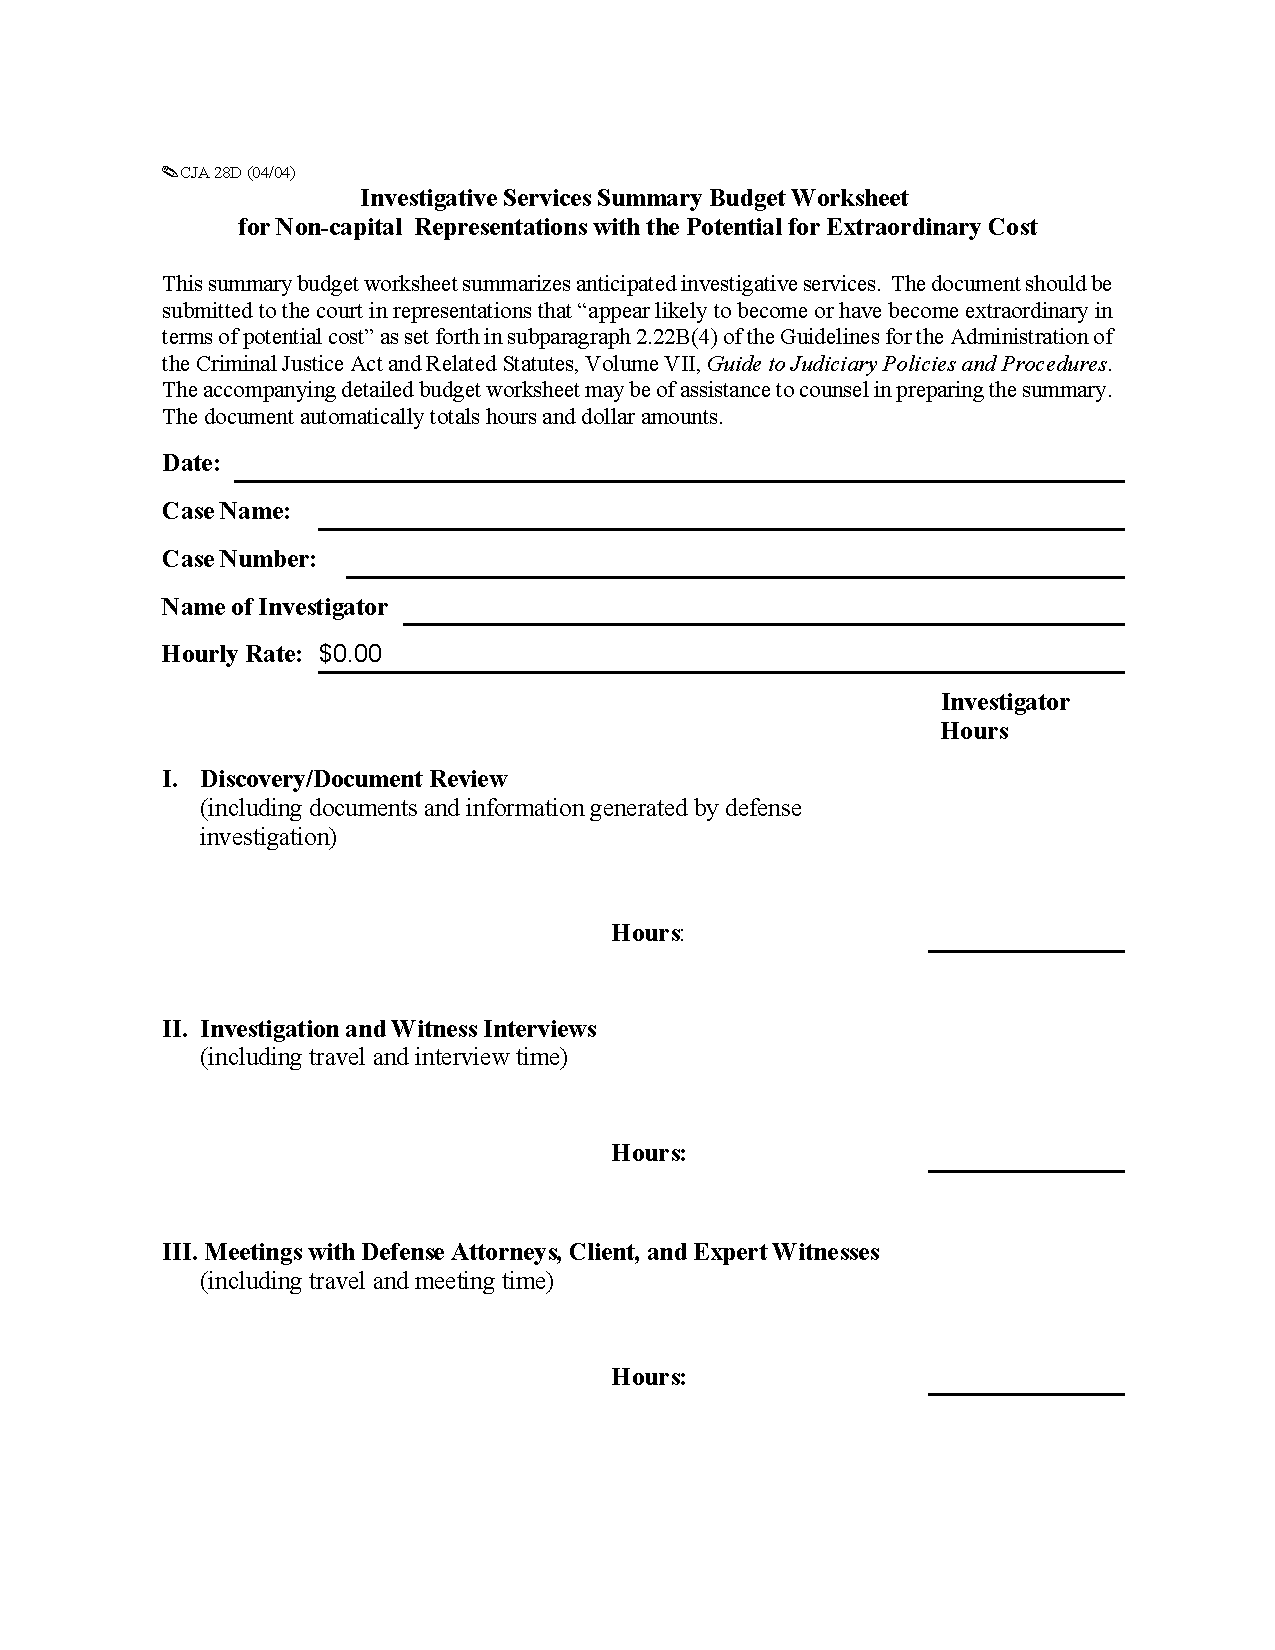 Form Cja D Investigative Services Summary Budget Worksheet For Non Capital Representations